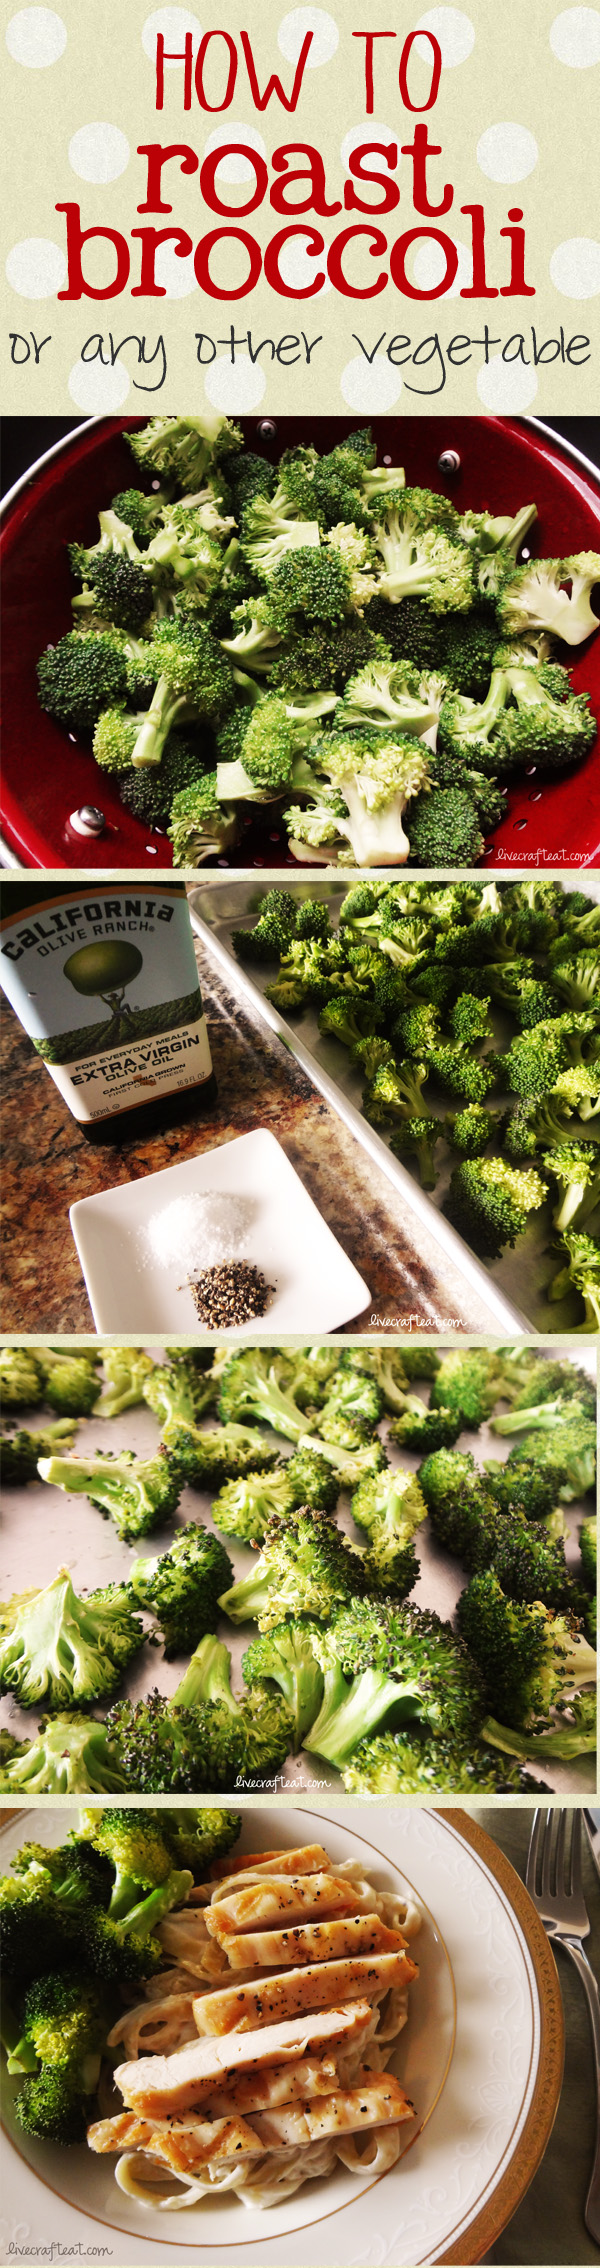 how to roast broccoli - by far my favorite way to eat it.